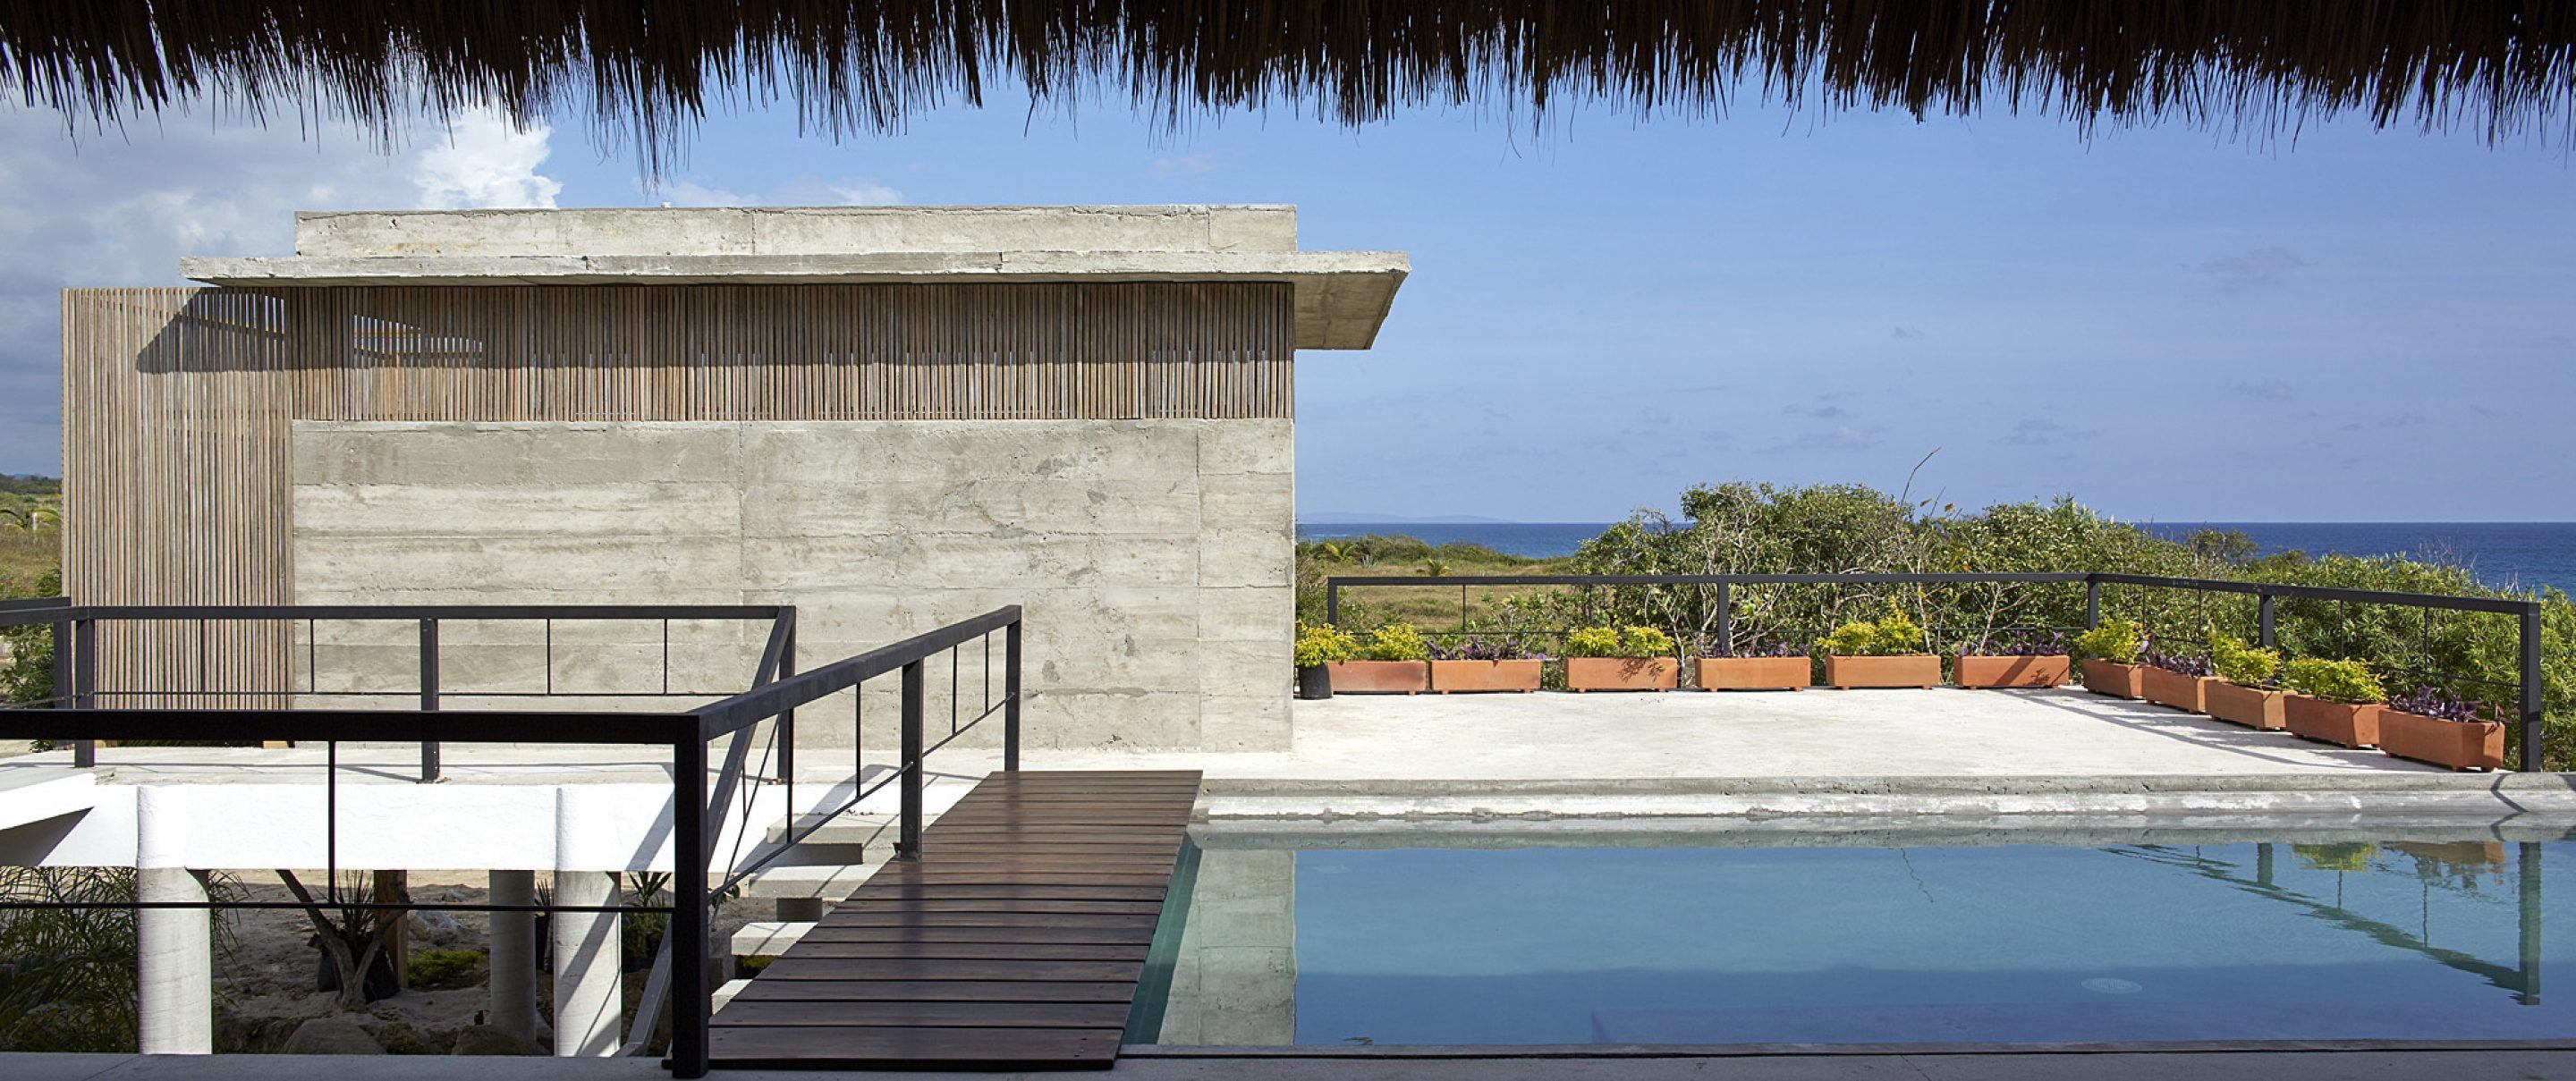 IGNANT-Travel-CasaCal-4